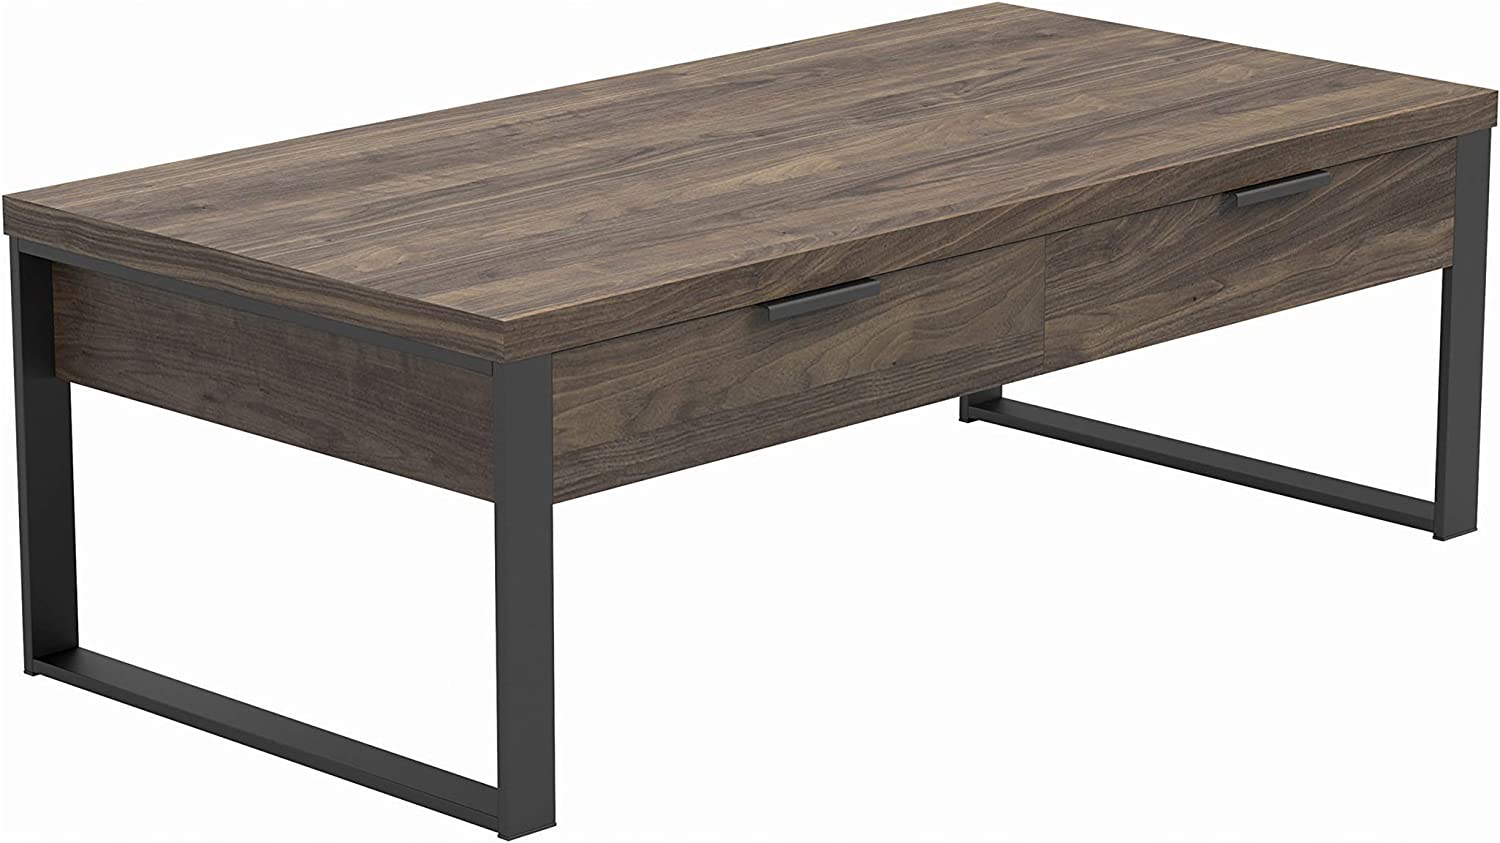 Coaster Home Furnishings Rectangular Coffee Table, Aged Walnut and Gunmetal